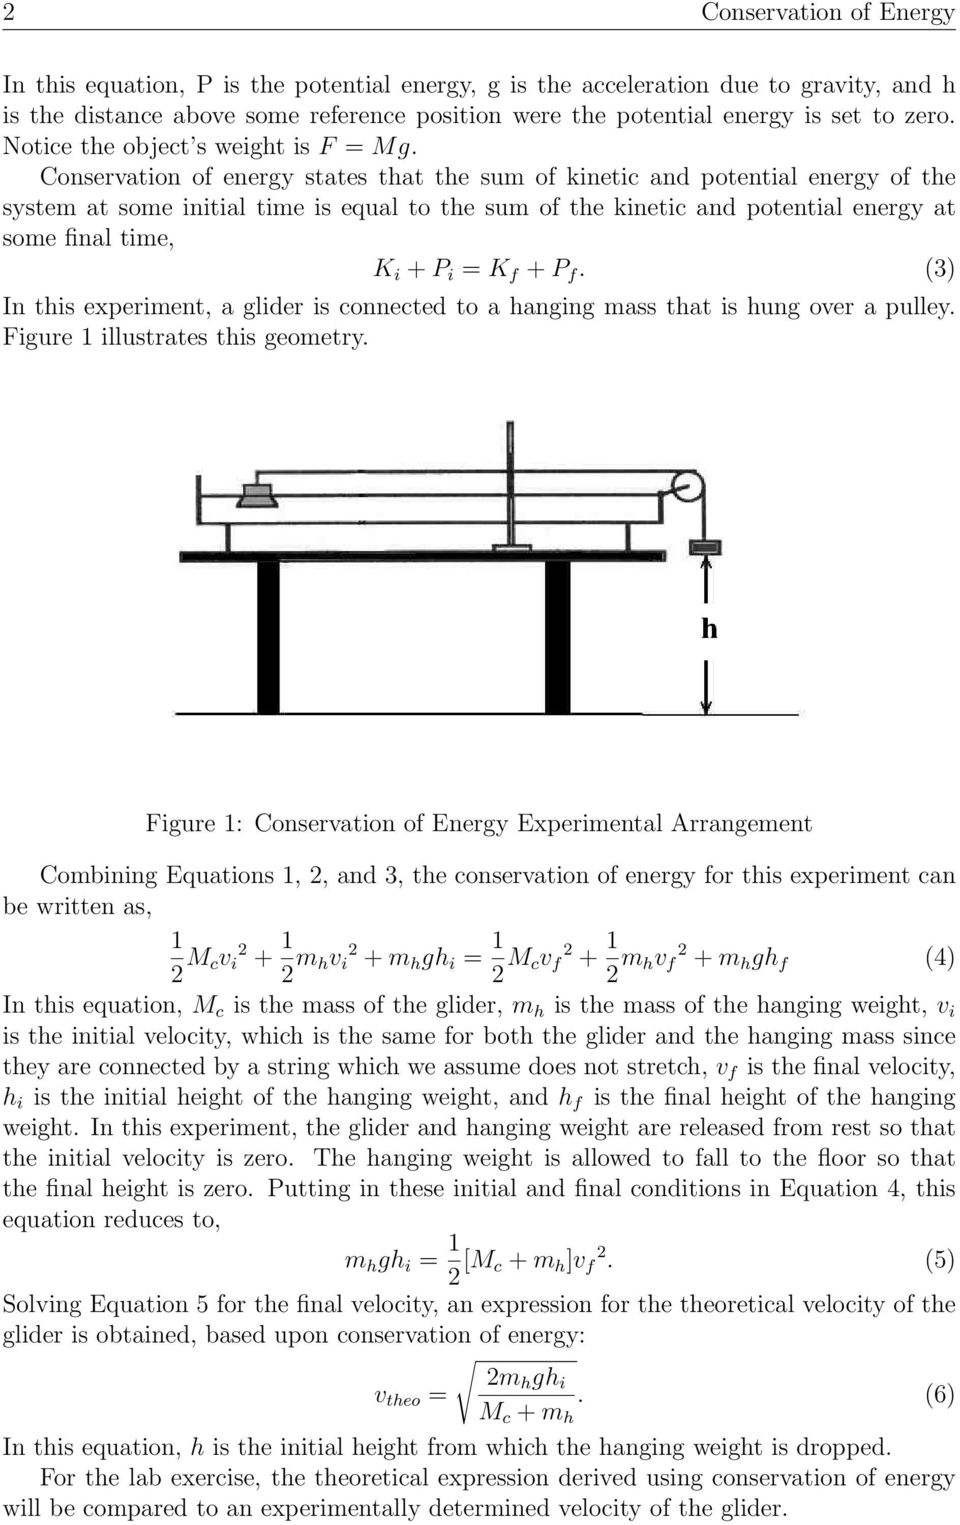 Conservation of energy states that the sum of kinetic and potential energy of the system at some initial time is equal to the sum of the kinetic and potential energy at some final time, K i + P i = K